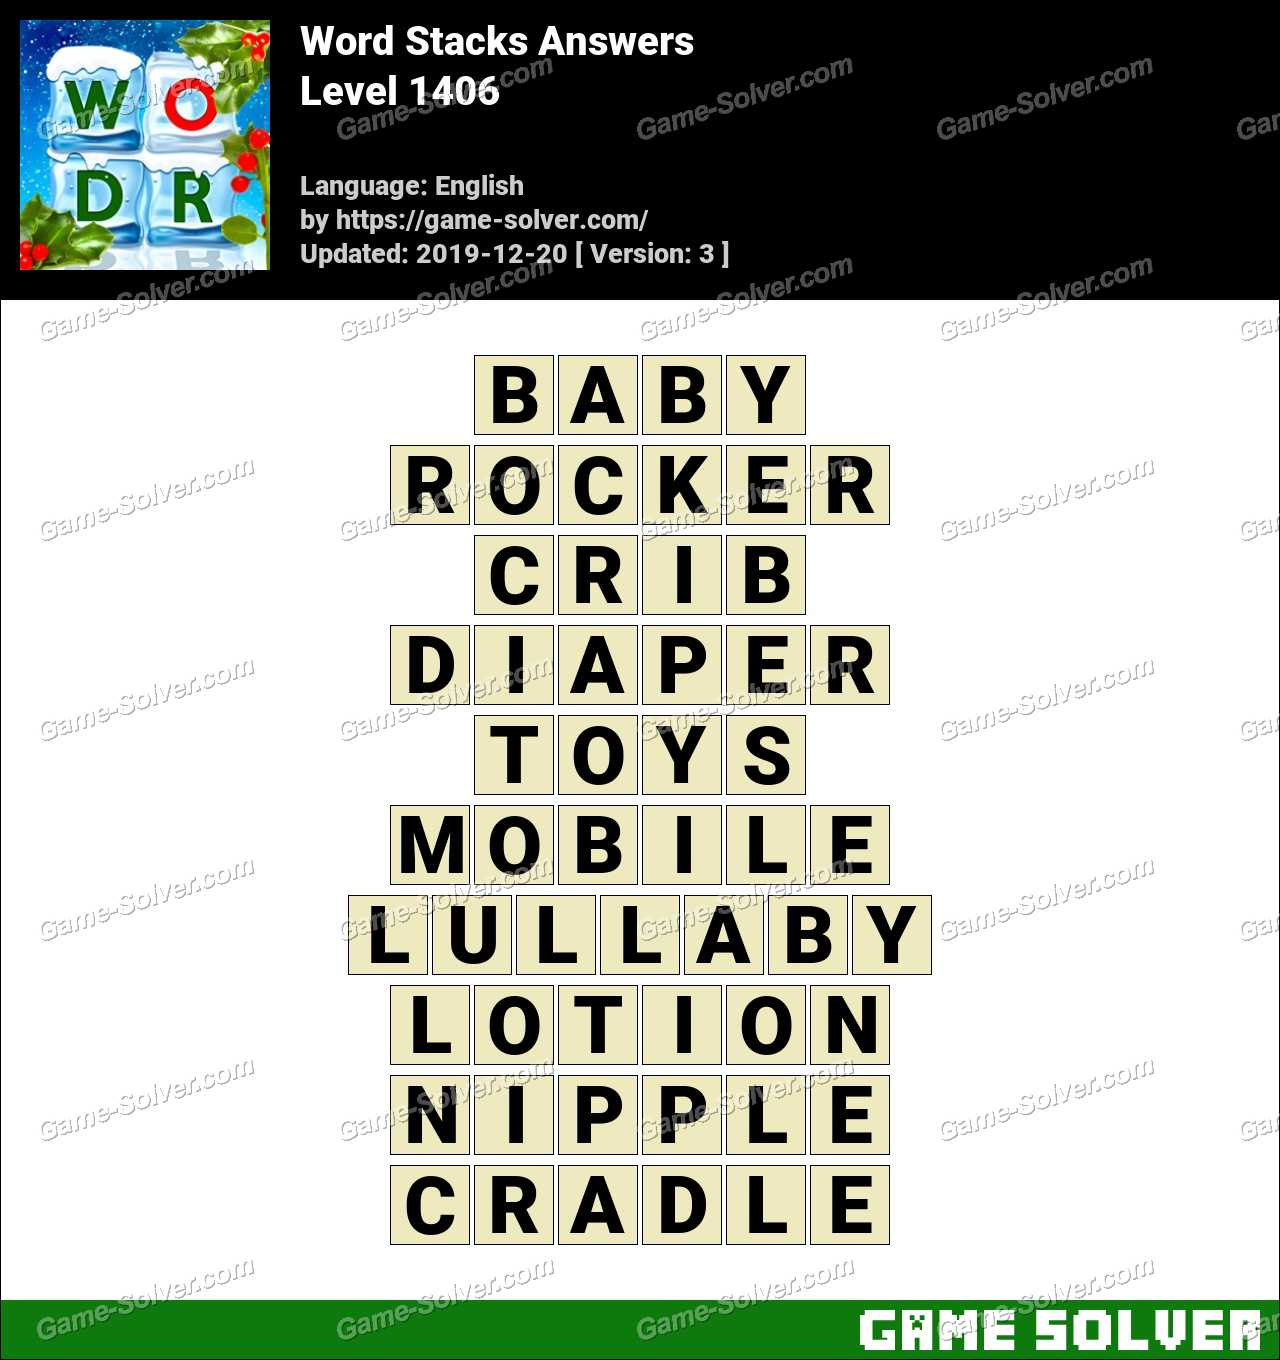 Word Stacks Level 1406 Answers